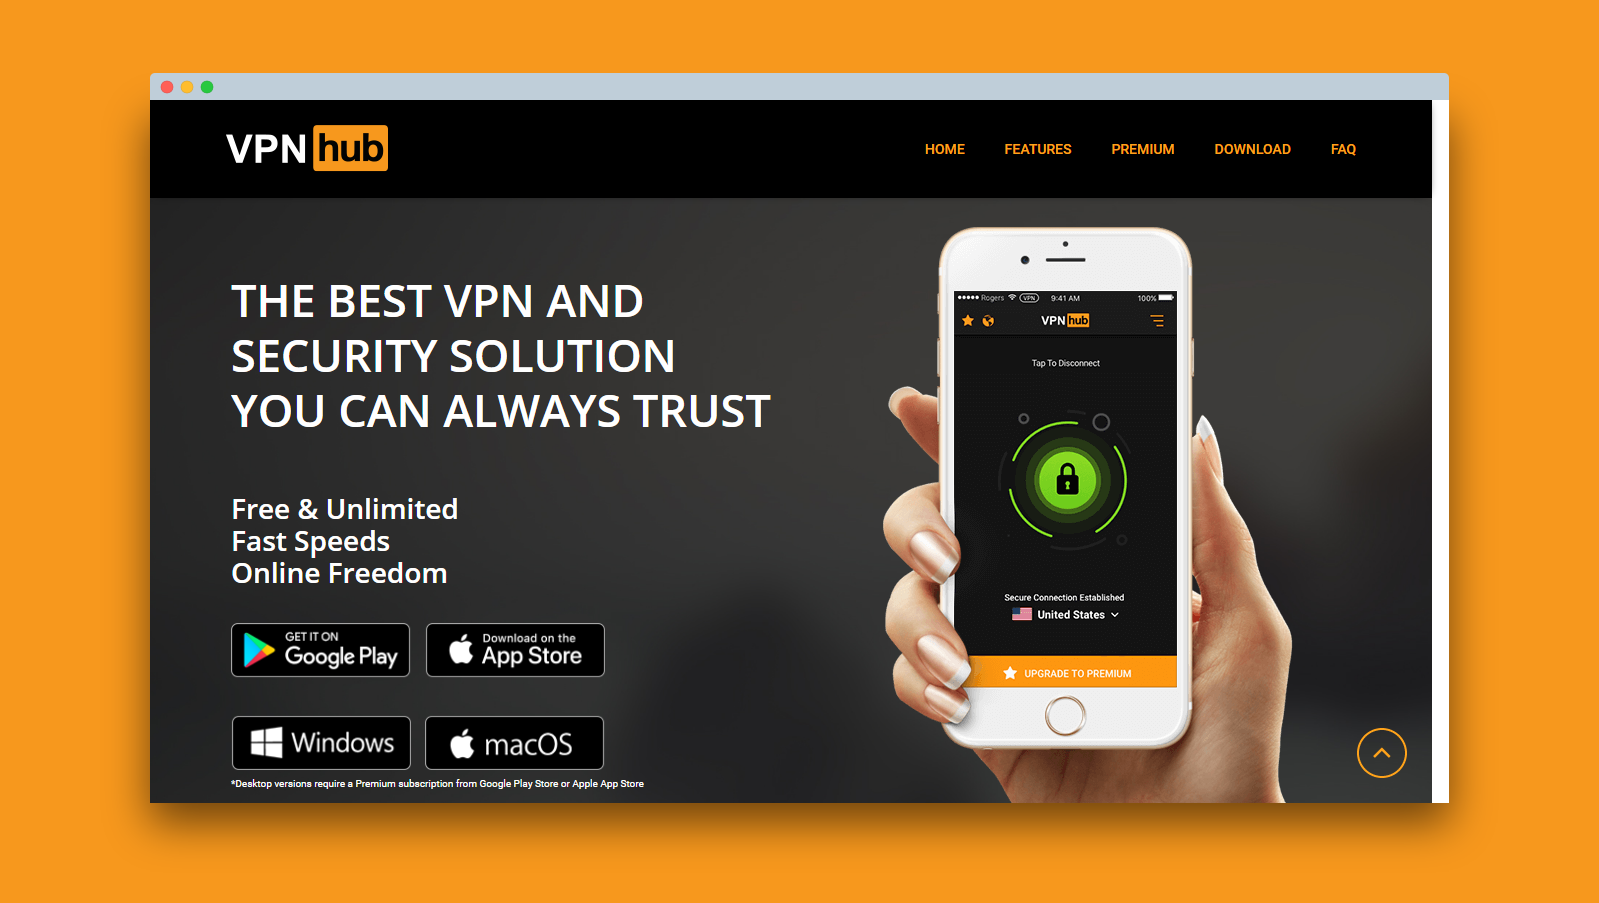 VPNhub review: PornHub's VPN falls short